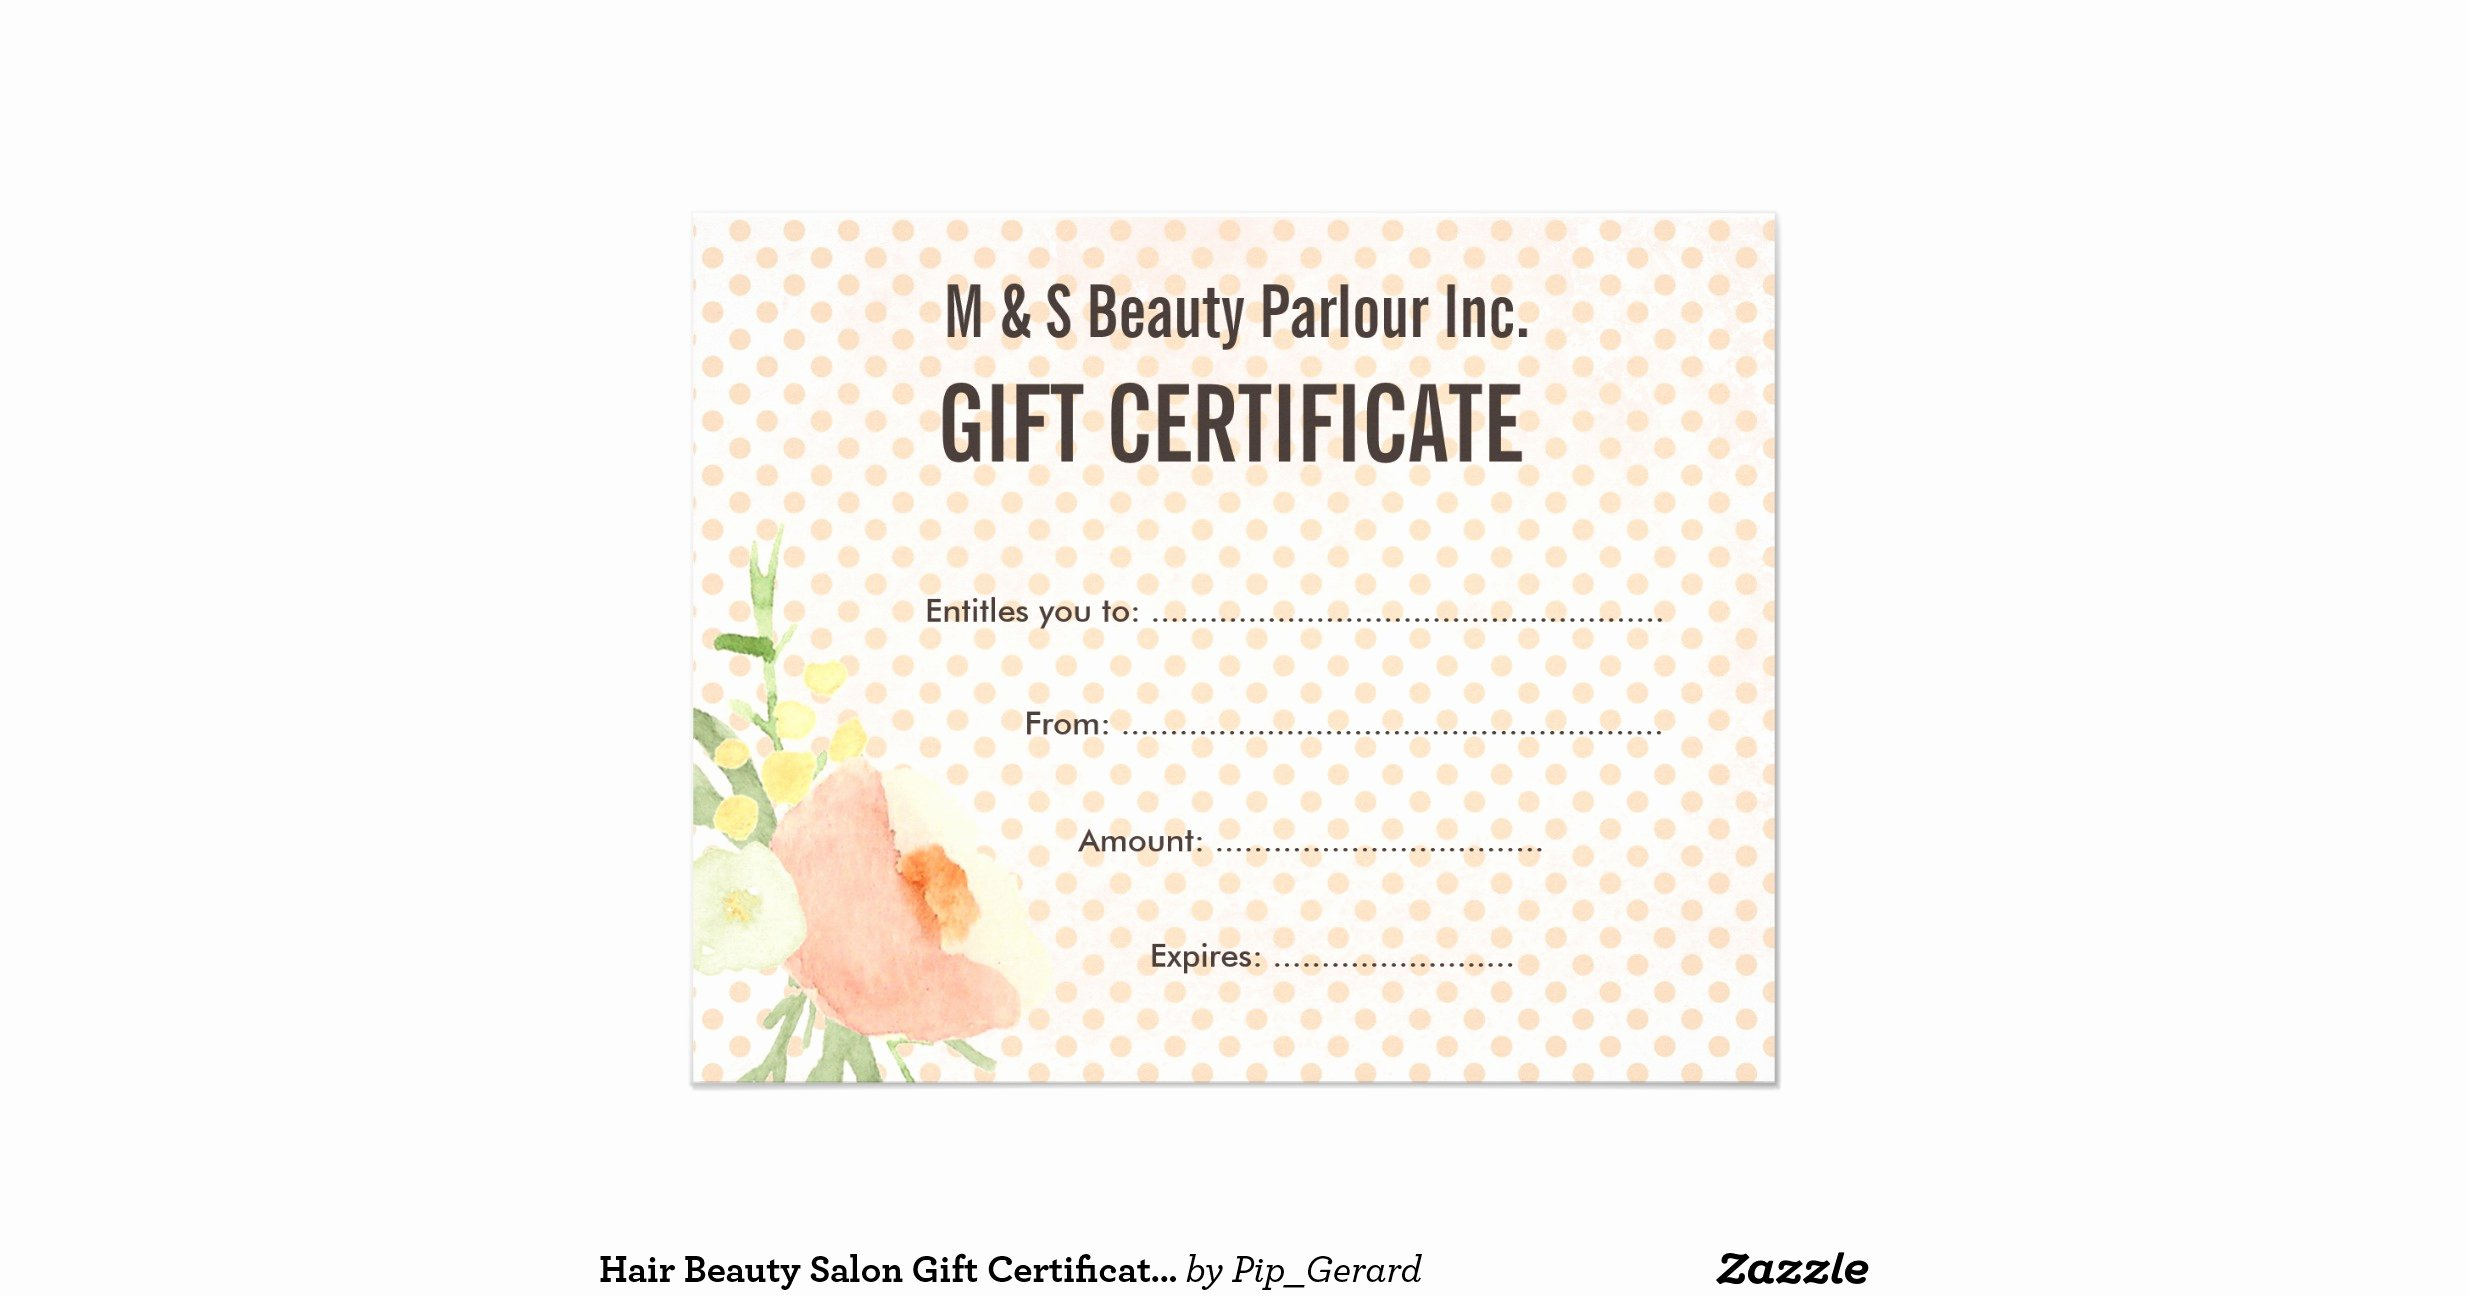 Salon Gift Certificates Templates Elegant Hair Beauty Salon T Certificate Template Flyer R894e5f5a7d B E9bdbb0ef3 Vgkoy 8byvr